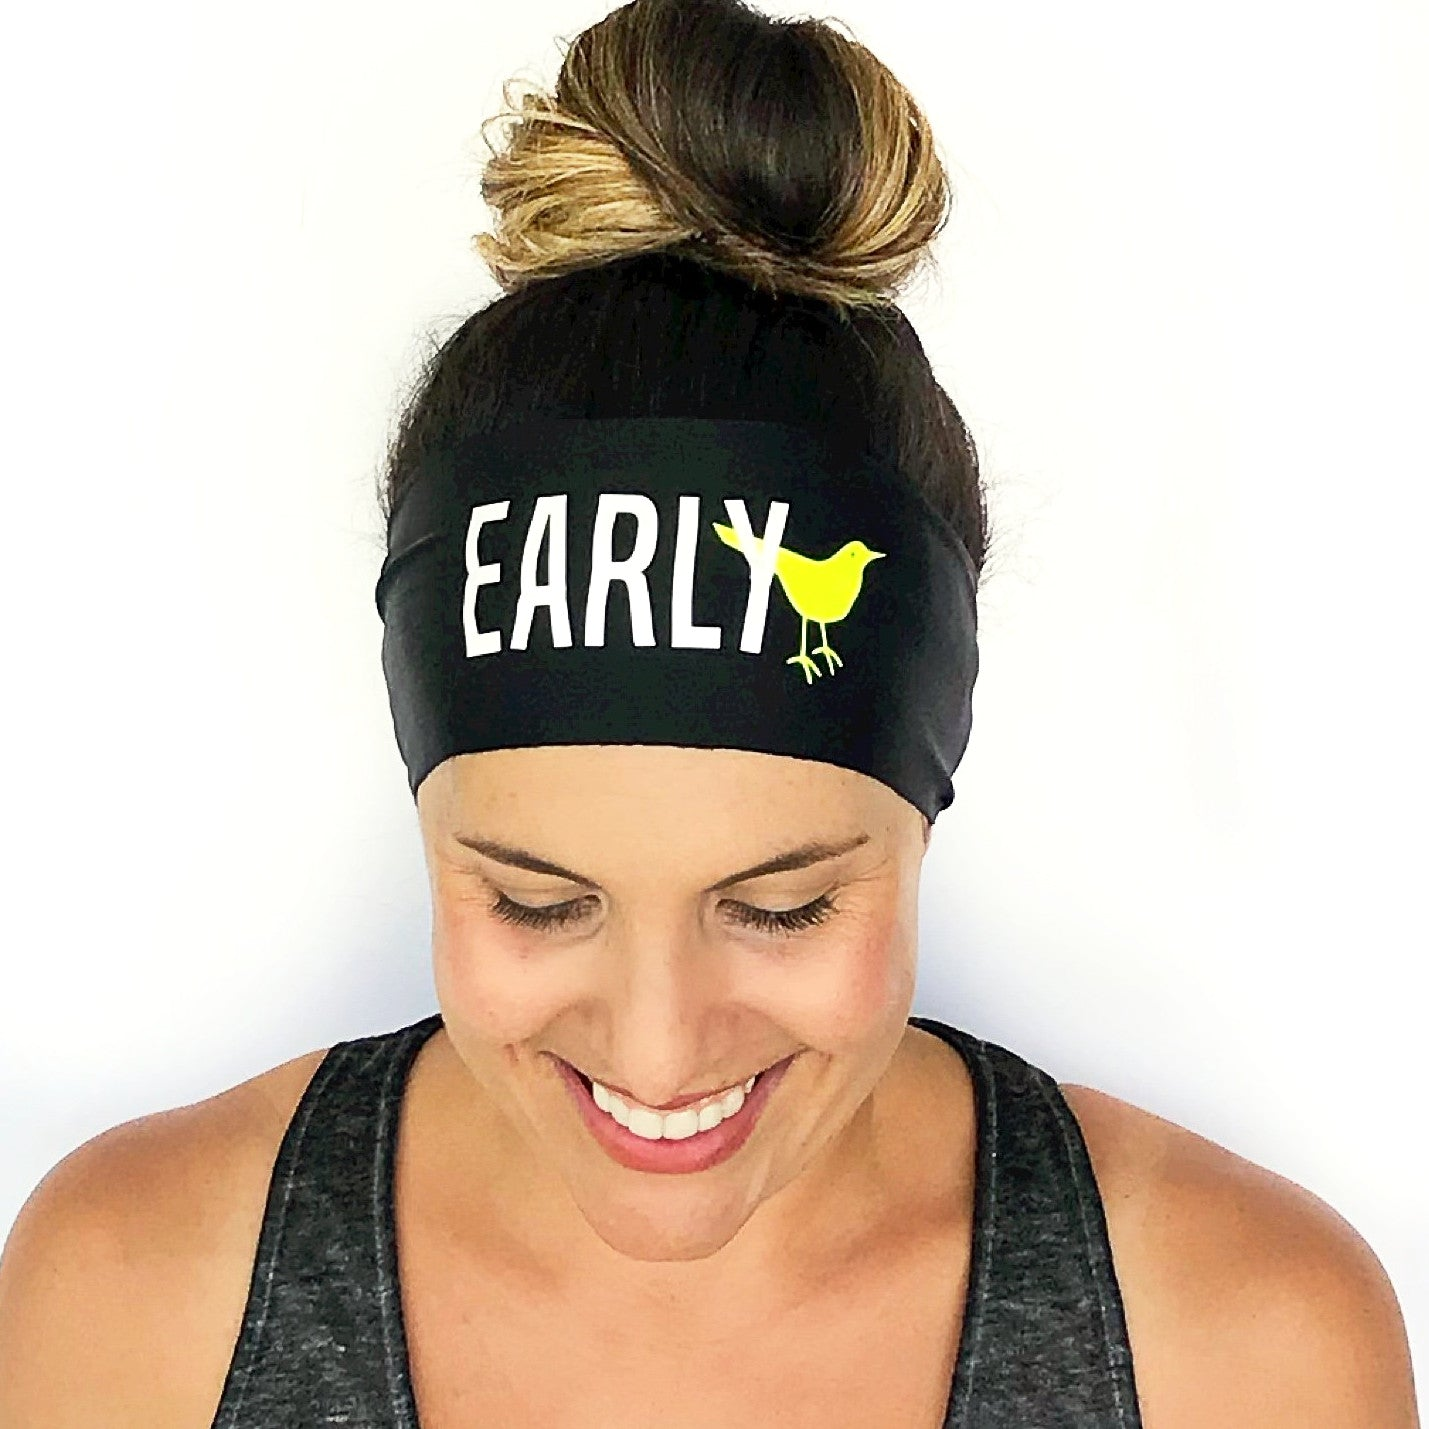 Early Bird Scripted Headband